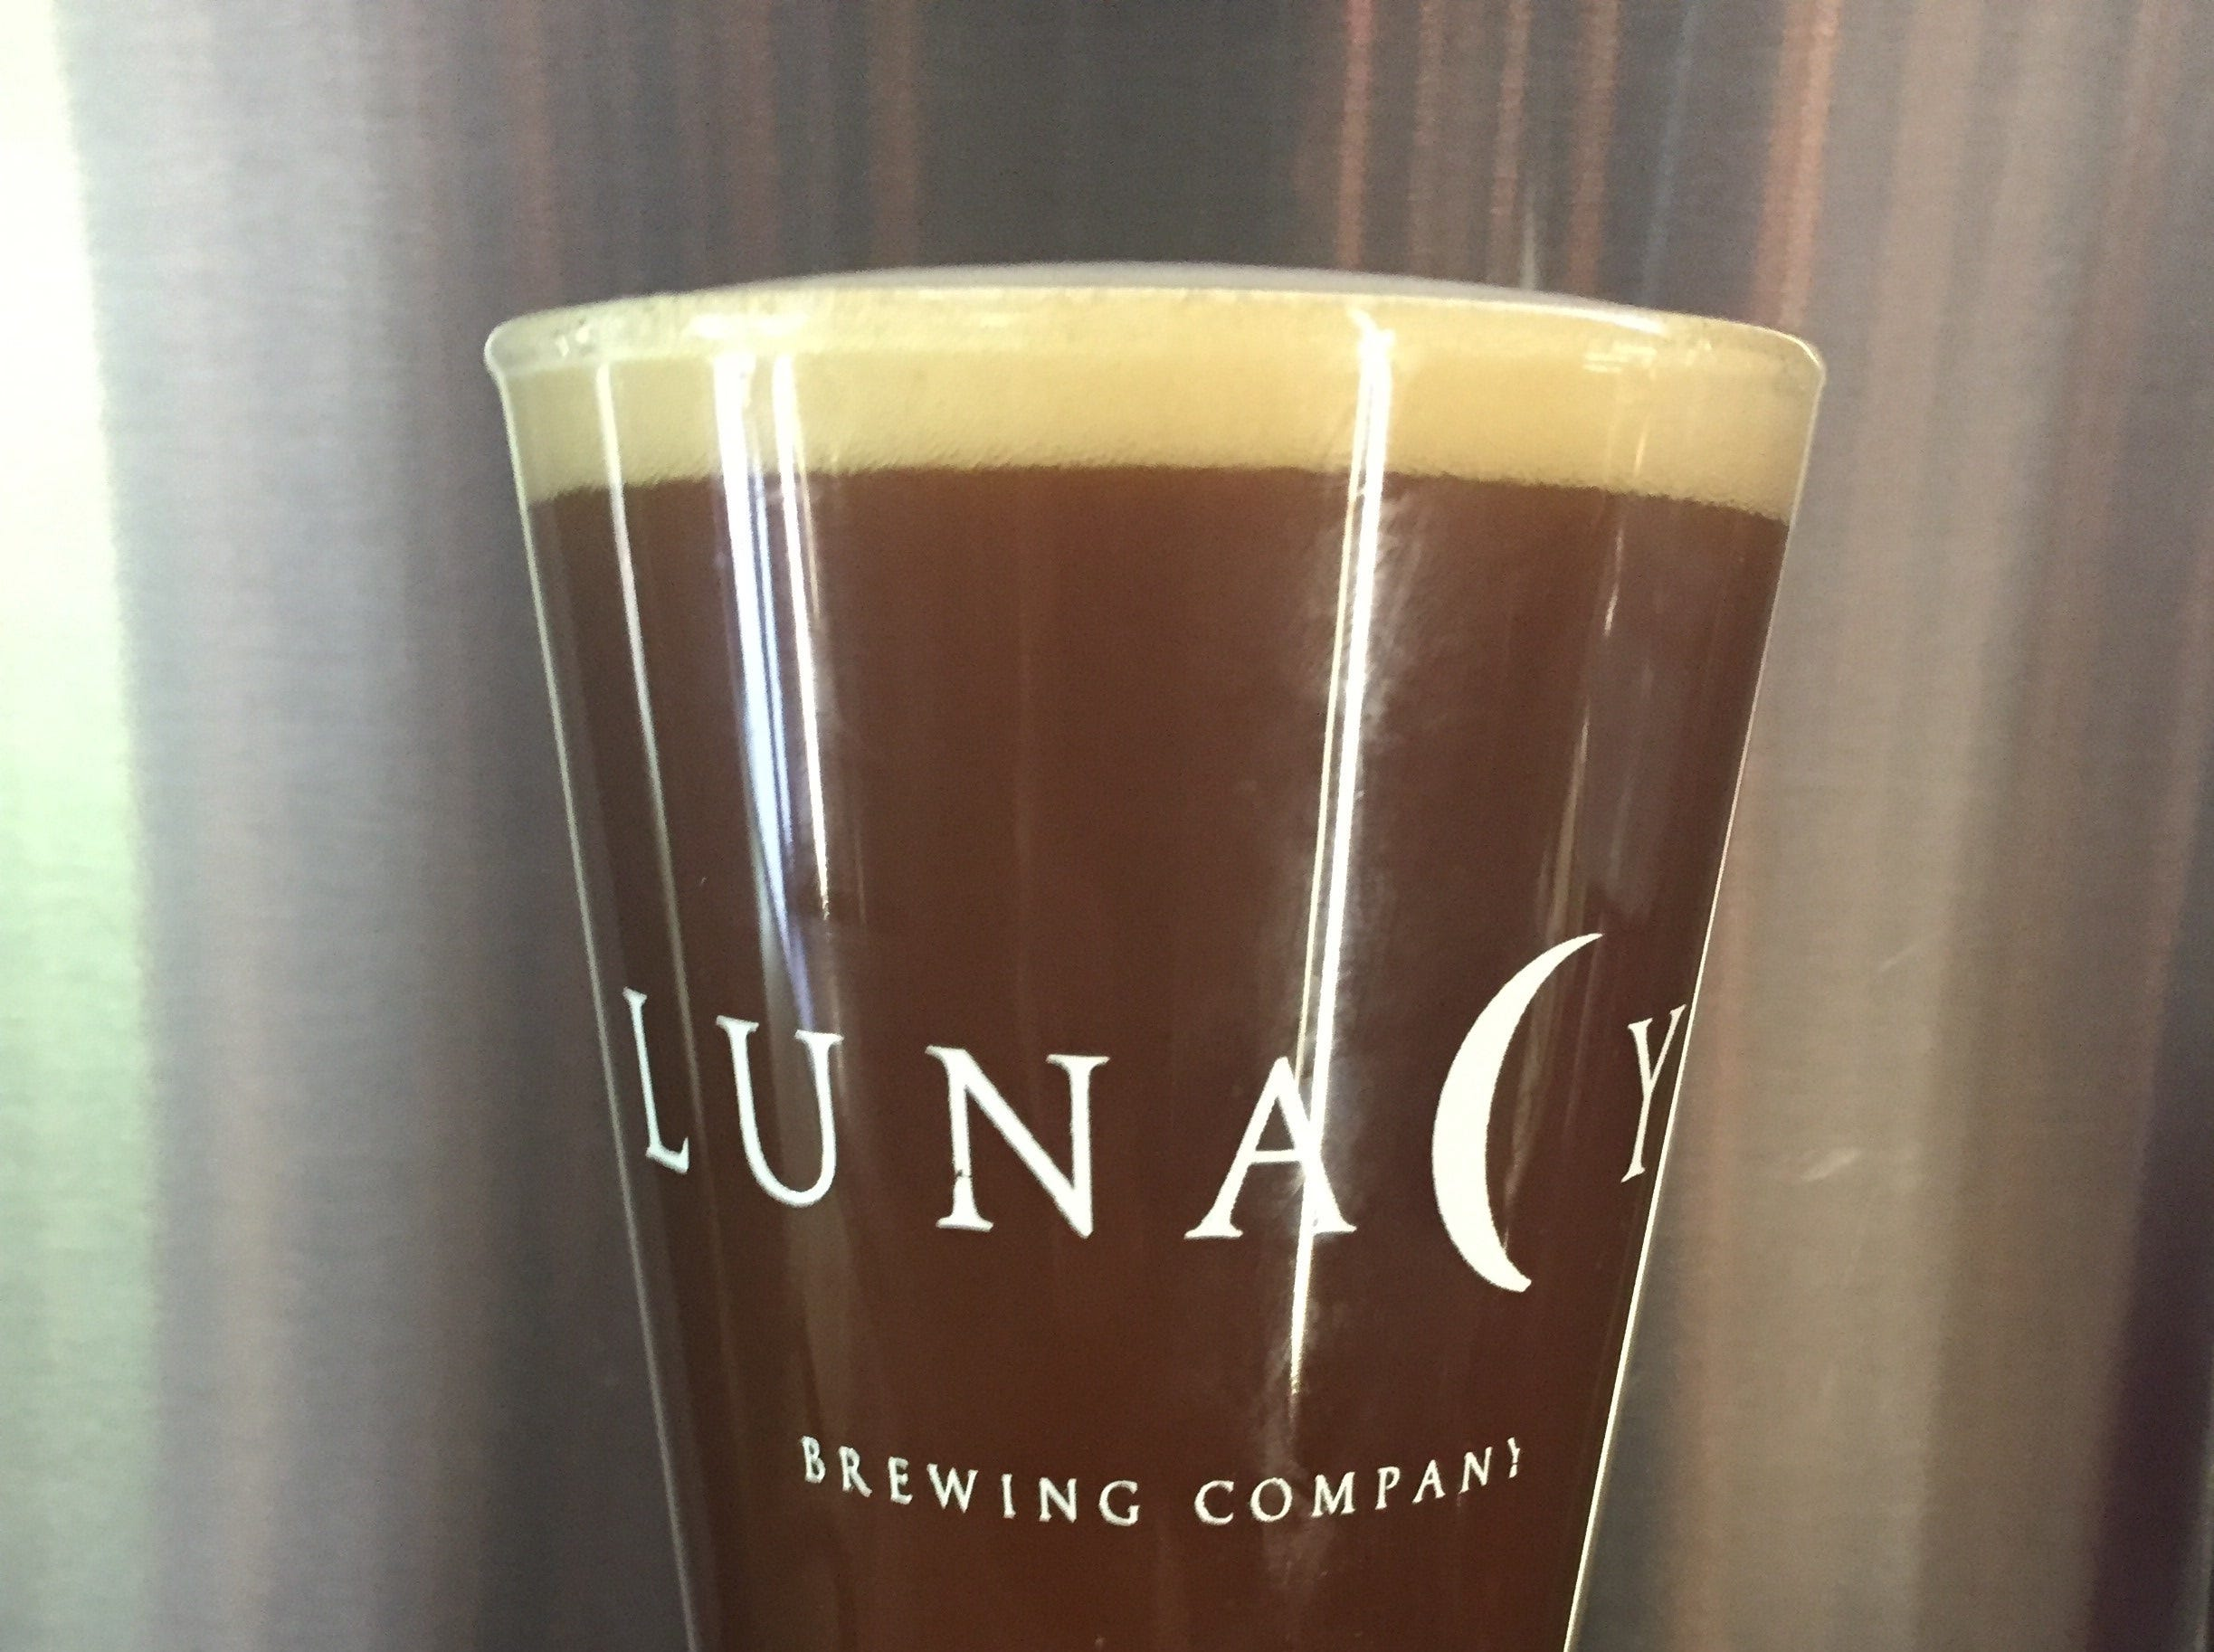 Celebrate Oktoberfest at Lunacy Brewing Company in Haddon Heights